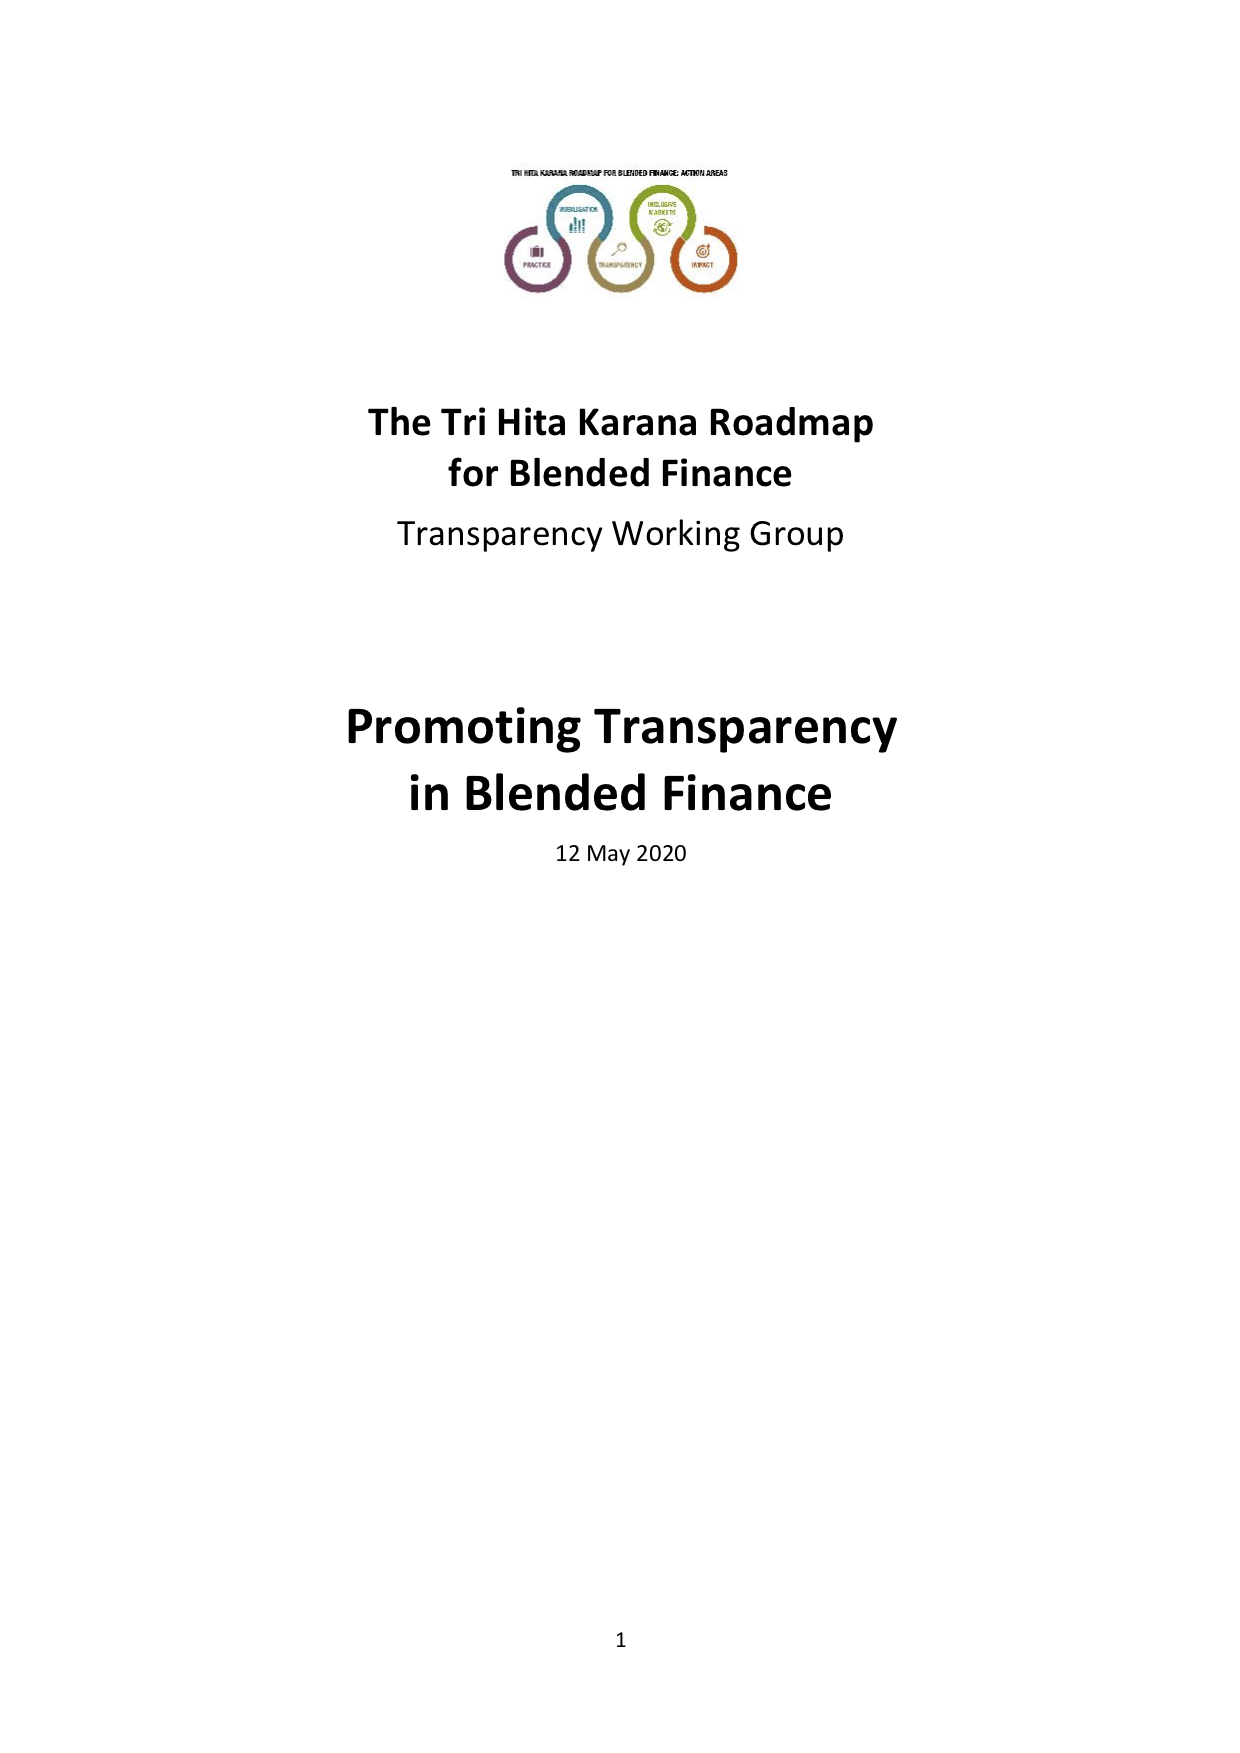 The Tri Hita Karana Roadmap for Blended Finance: Promoting Transparency in Blended Finance